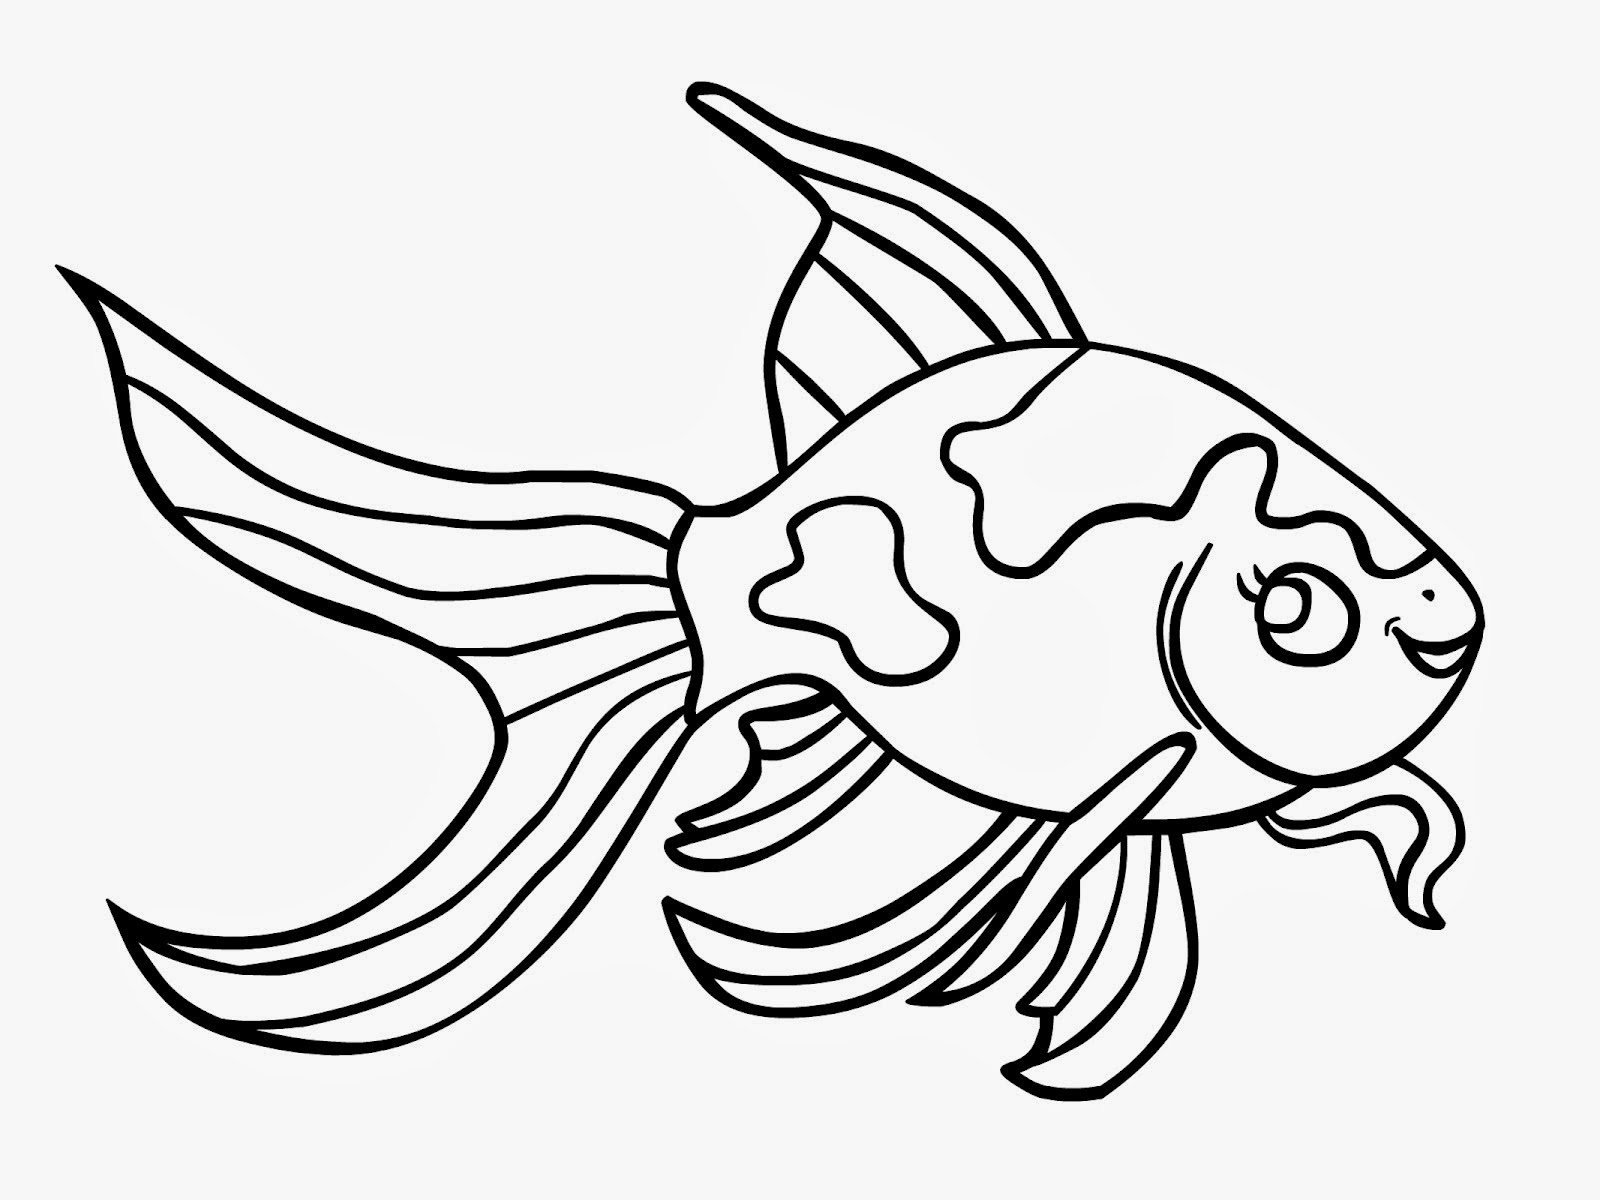 Outline drawings of fish for Fish drawing pictures